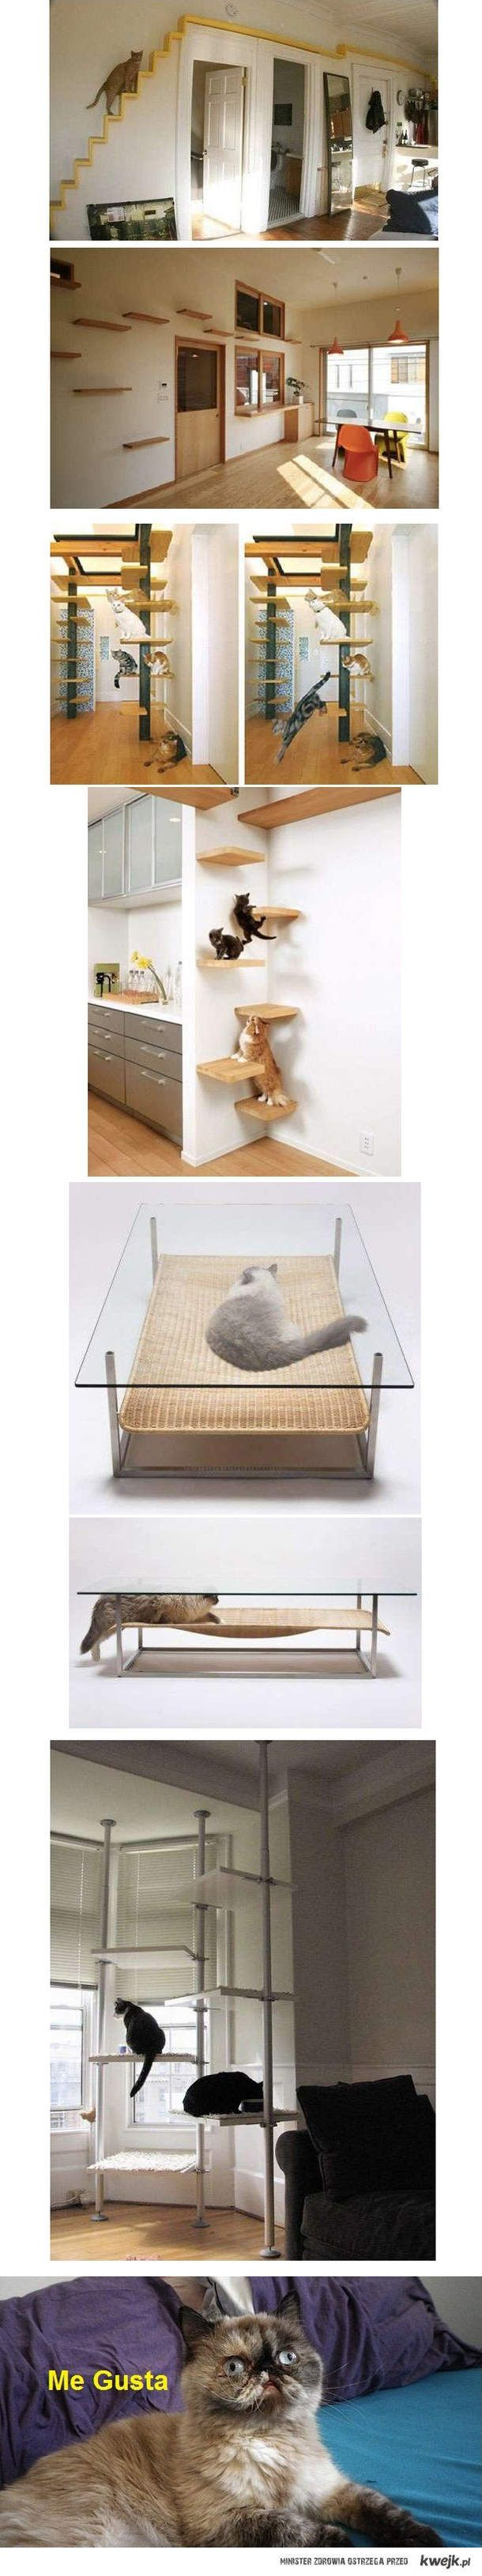 Every cats' dream...